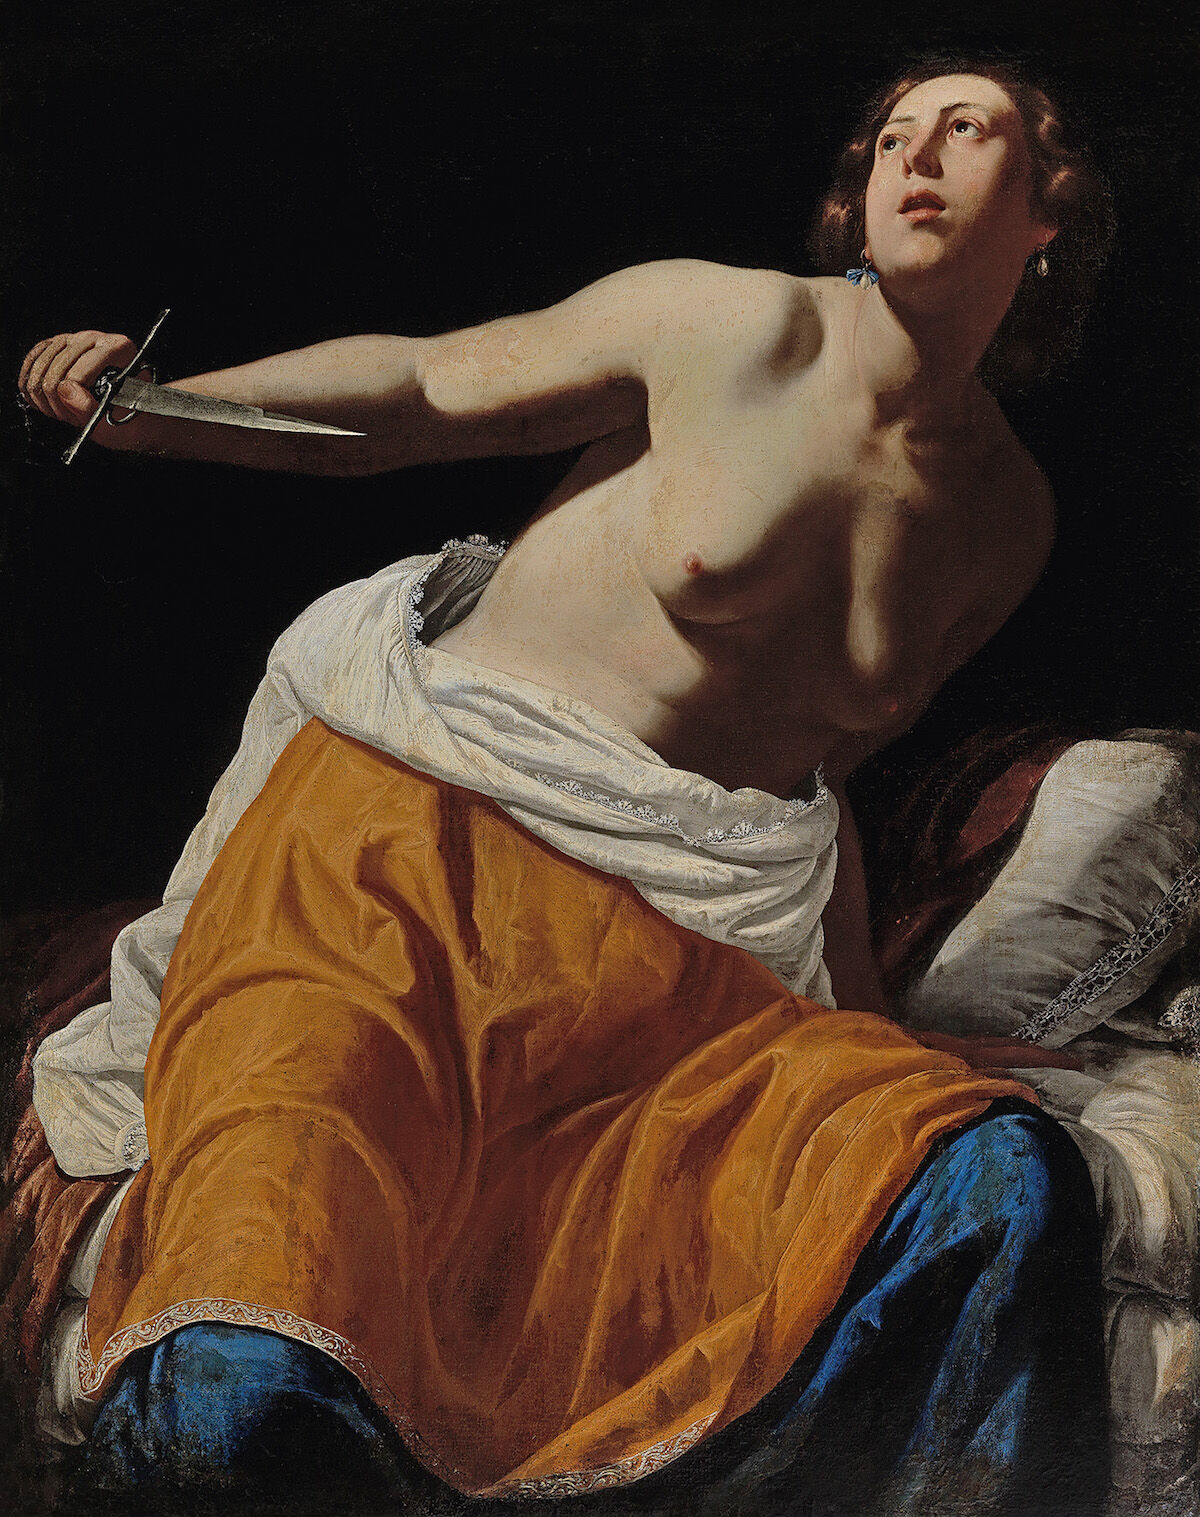 Artemisia Gentileschi, Lucretia, oil on canvas. Image courtesy and © Dorotheum.